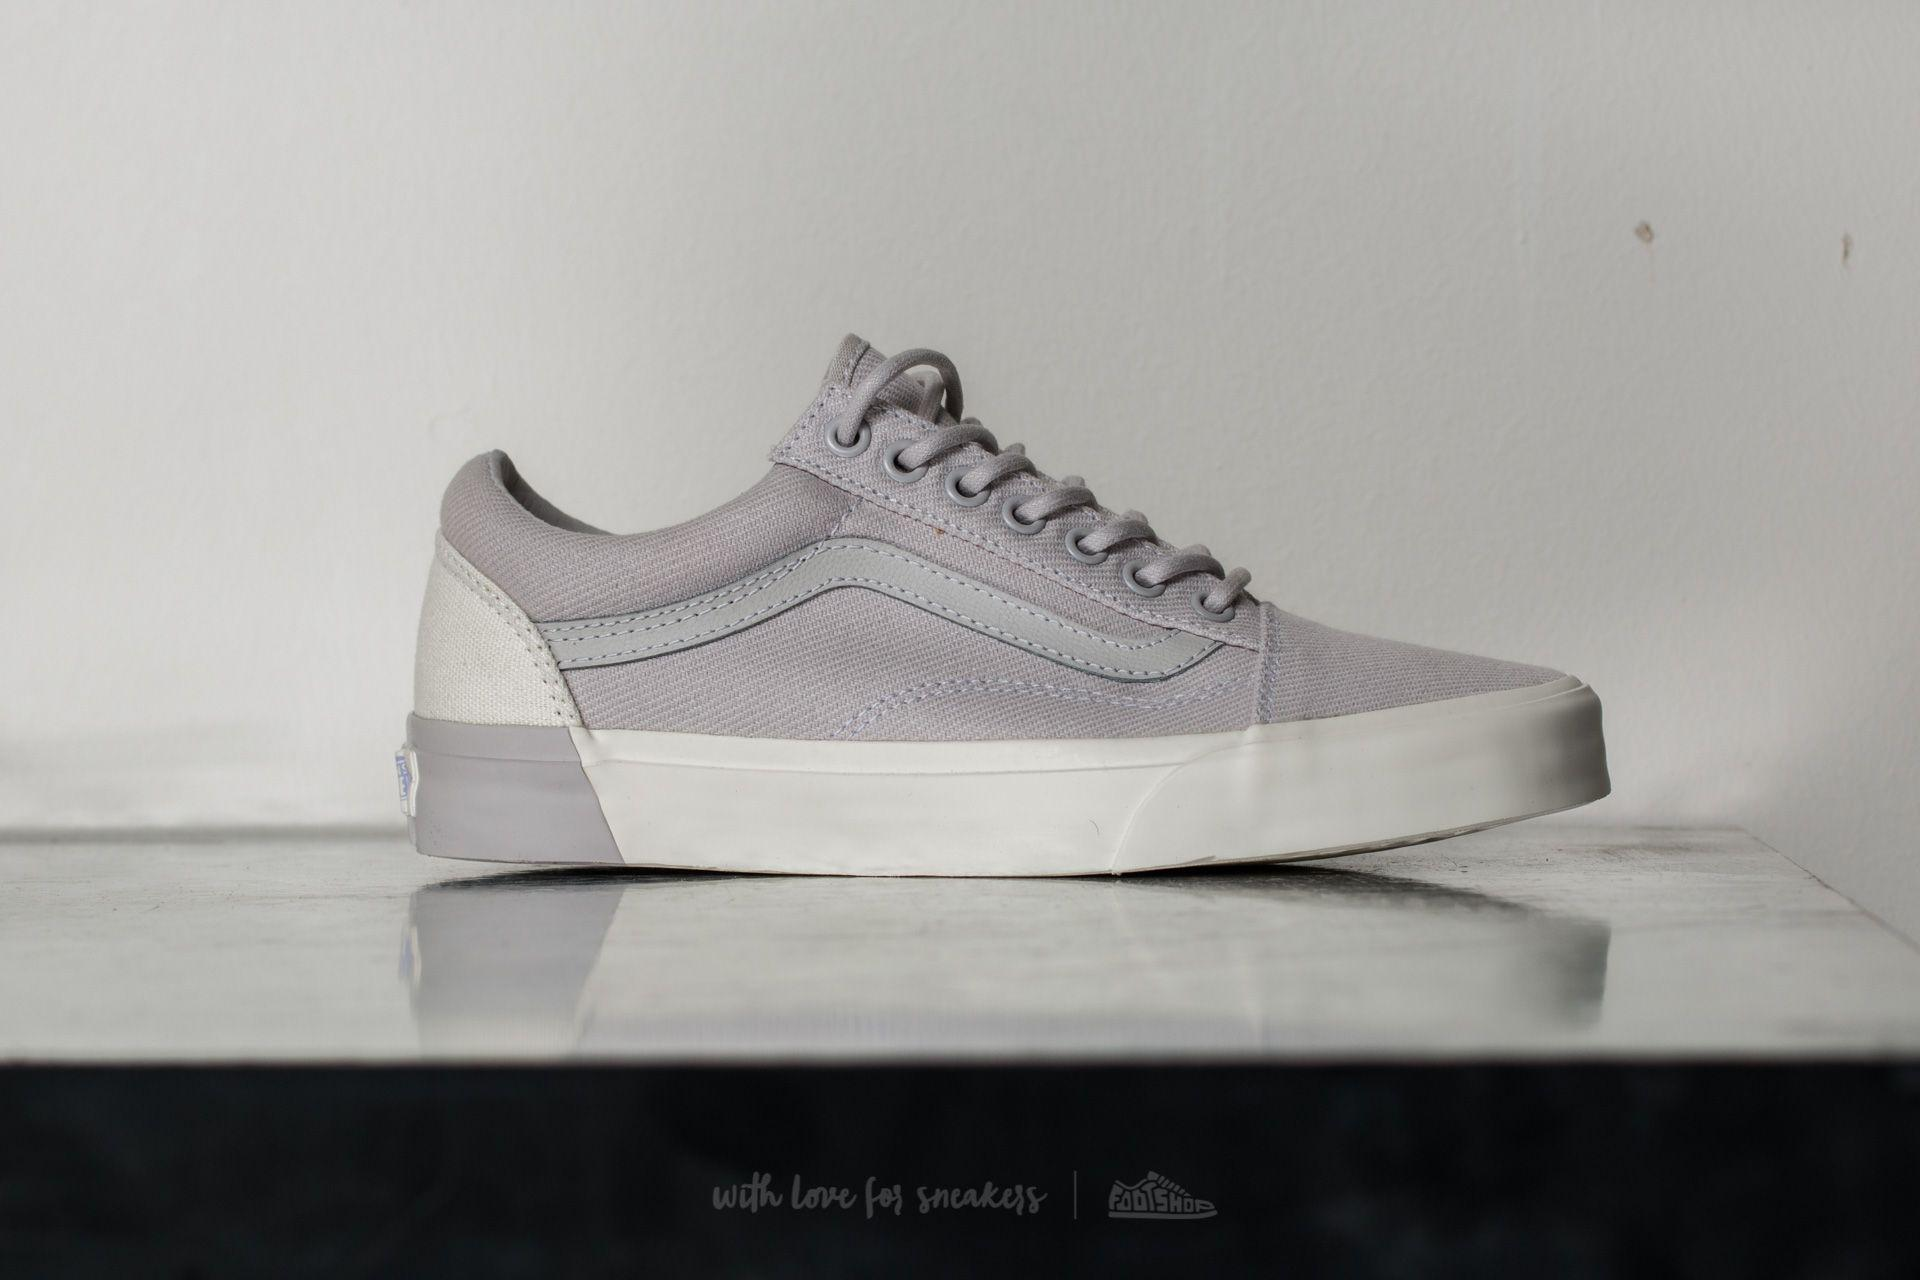 Lyst - Vans Old Skool Dx (blocked) Classic White  Grey in Gray for Men 6f63f9d722b